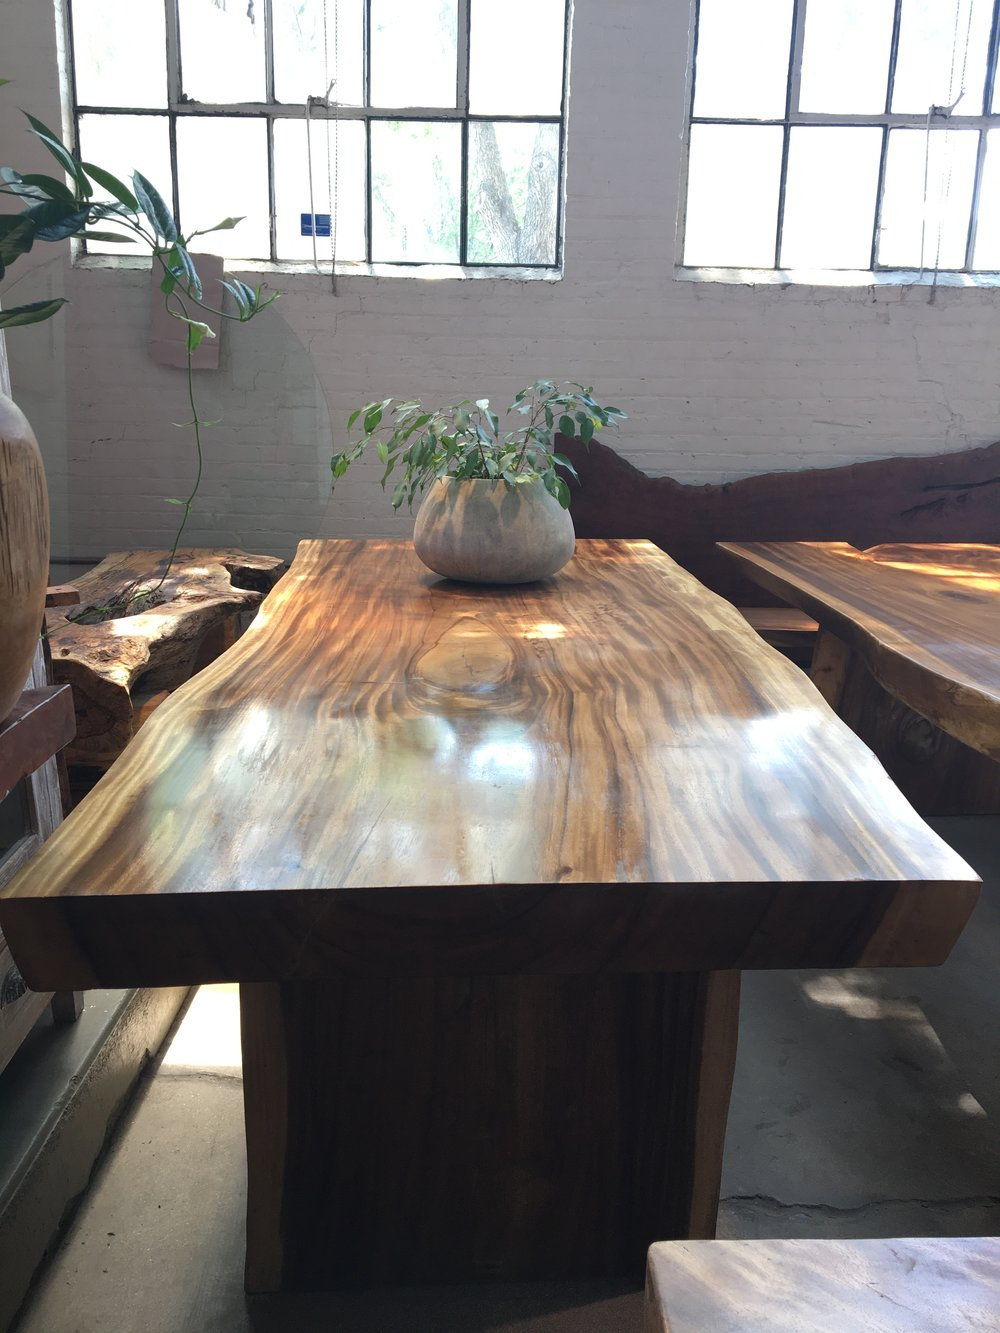 extra wide live edge dining table. luxury, modern furniture in winnipeg, canada.JPG